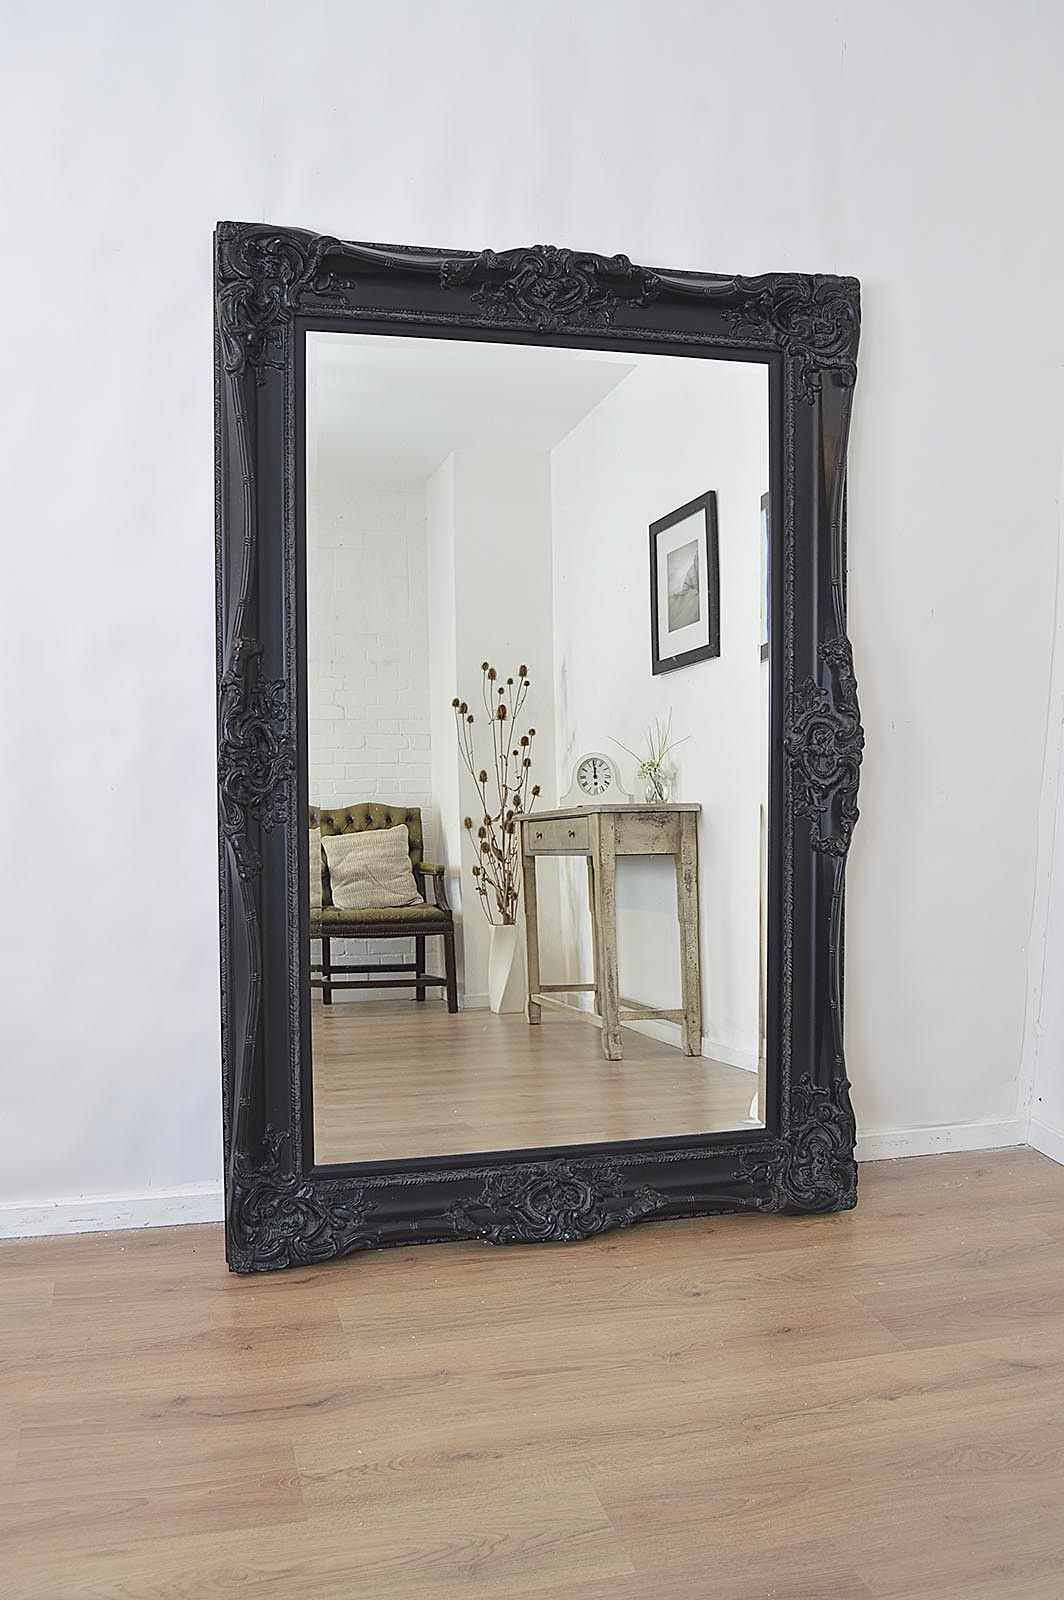 6Ft X 4Ft Large Black Antique Style Rectangle Wood Wall Pertaining To Rectangle Ornate Geometric Wall Mirrors (Gallery 28 of 30)